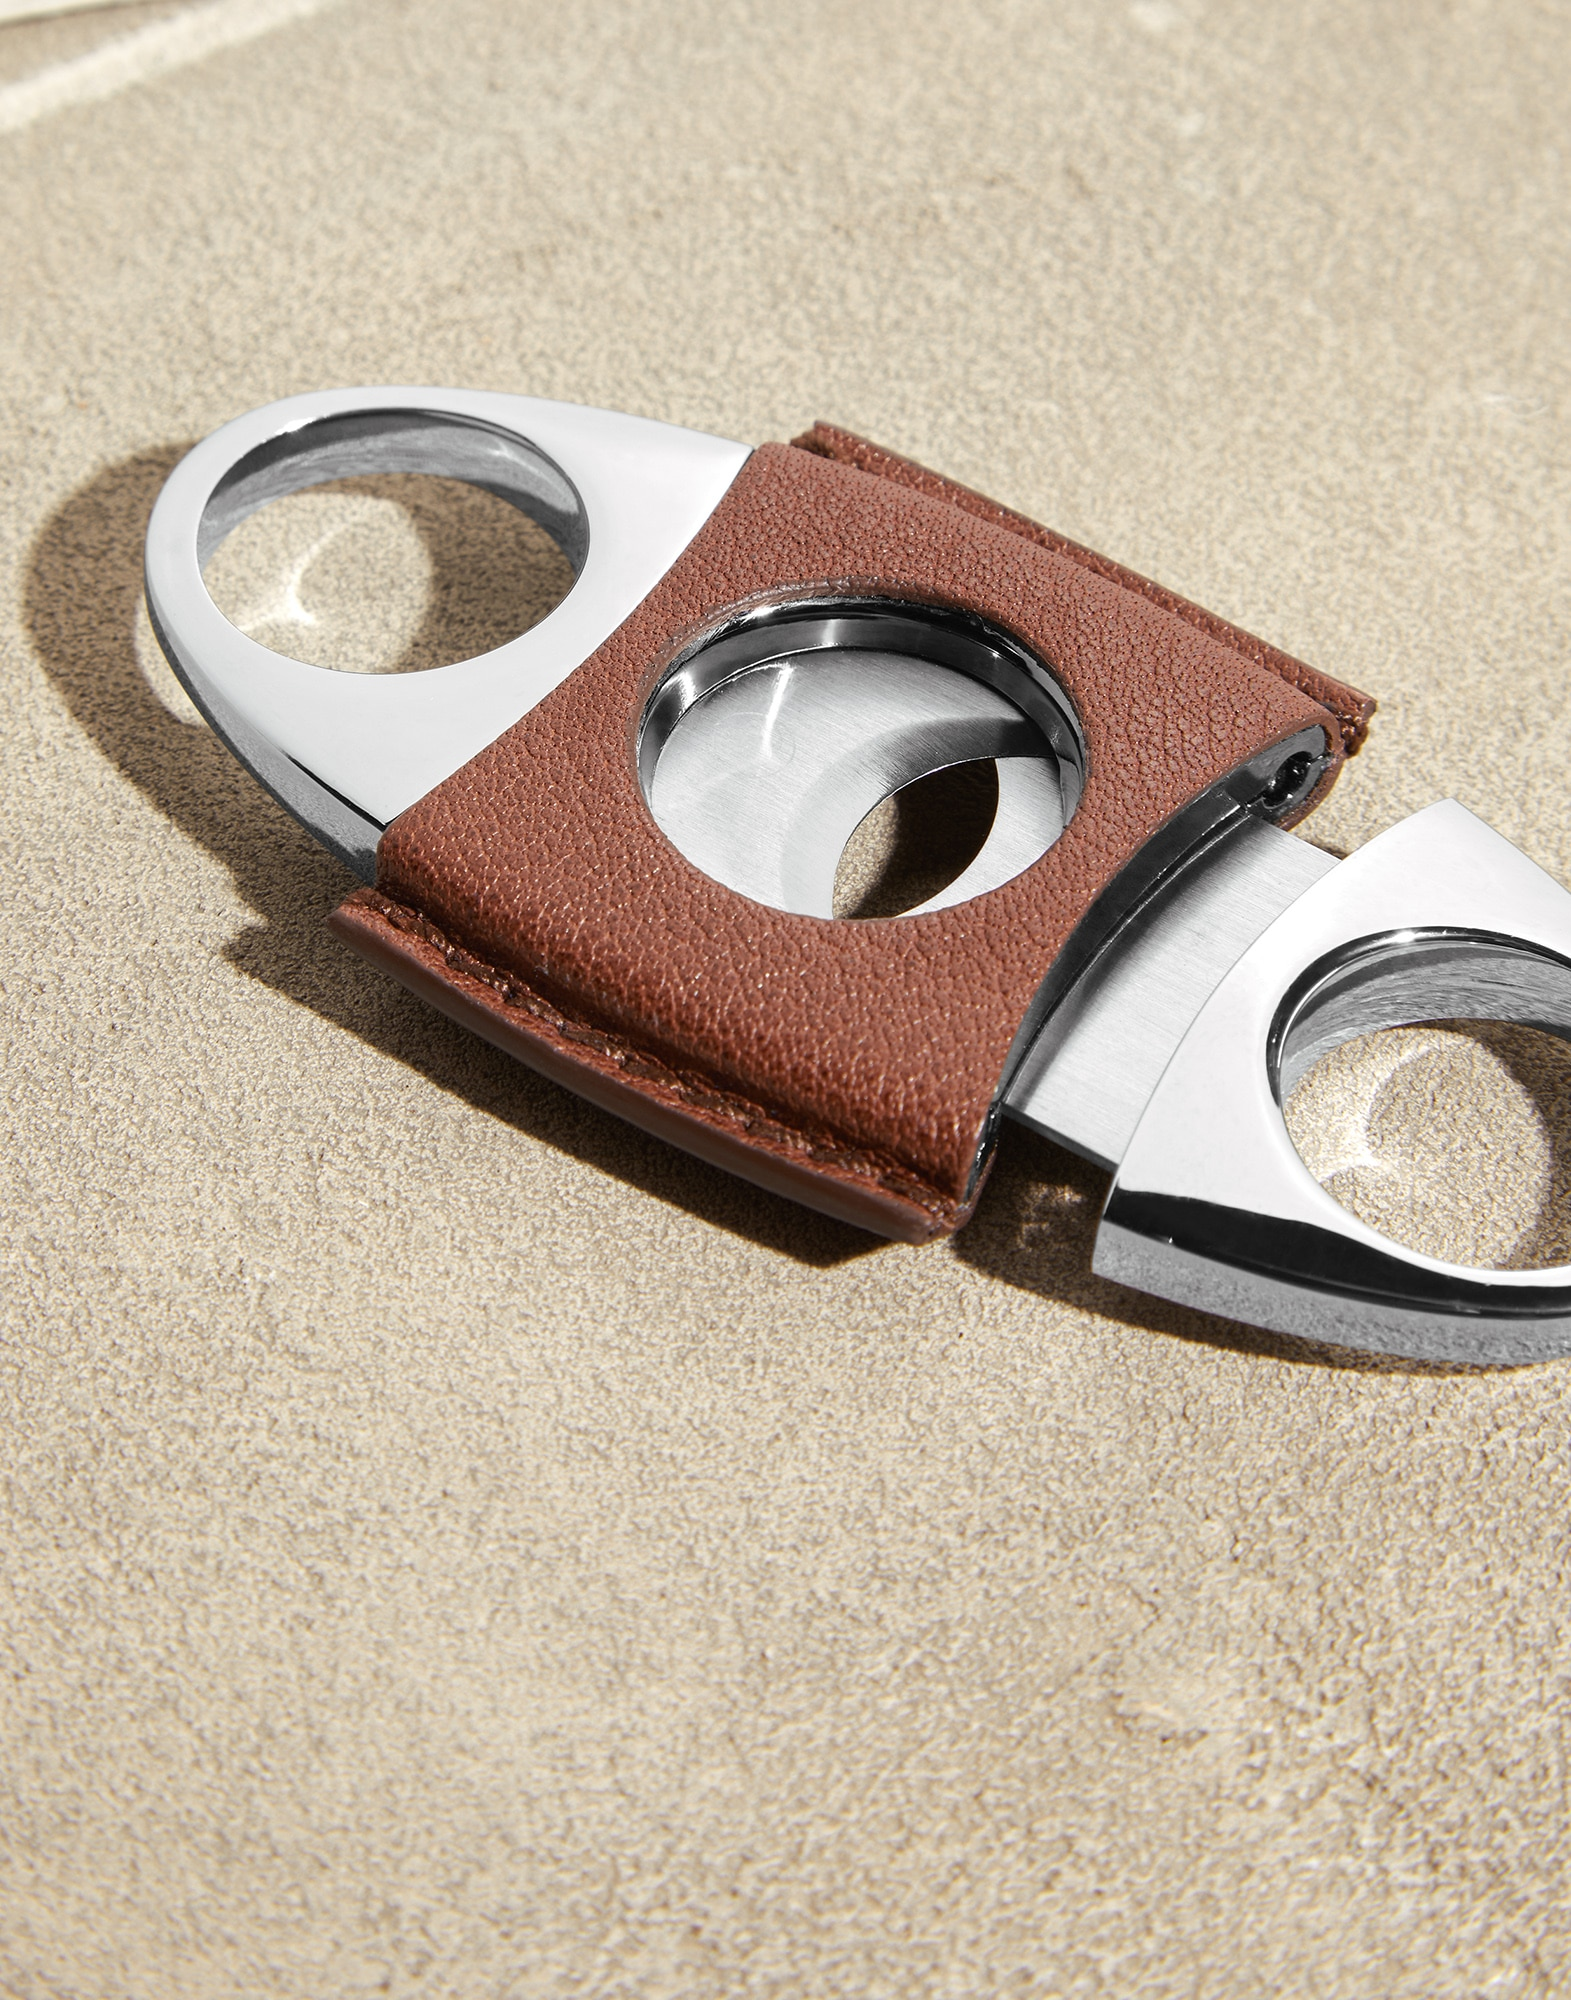 Cigar Cutter - Detail view